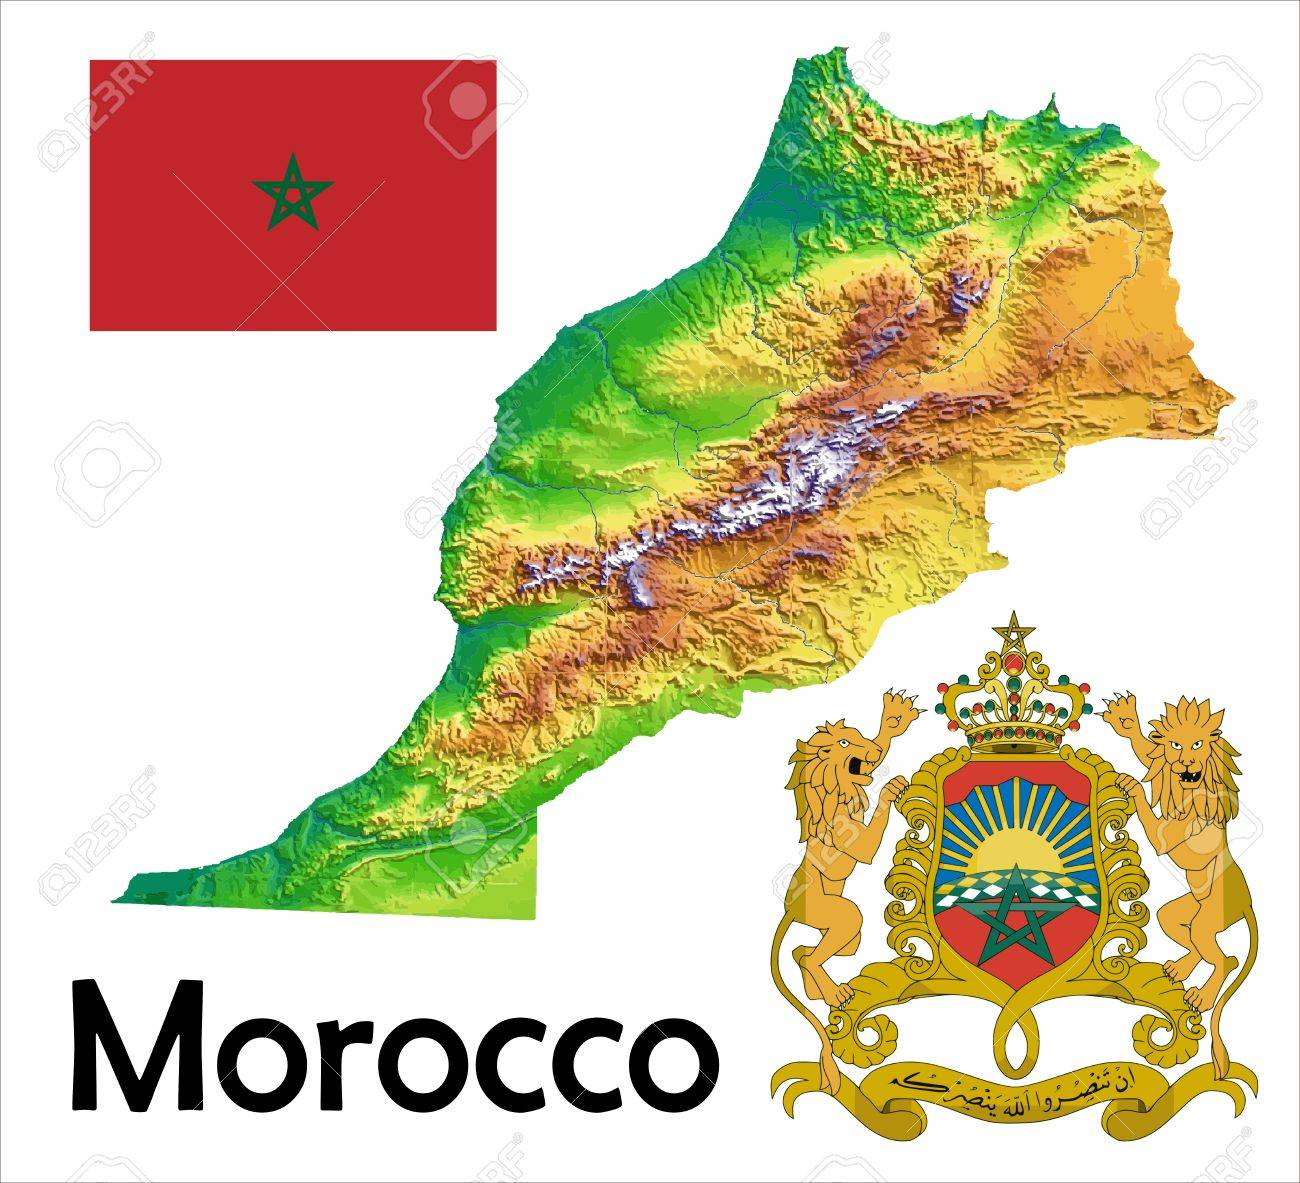 Morocco Map Flag Coat Royalty Free Cliparts Vectors And Stock